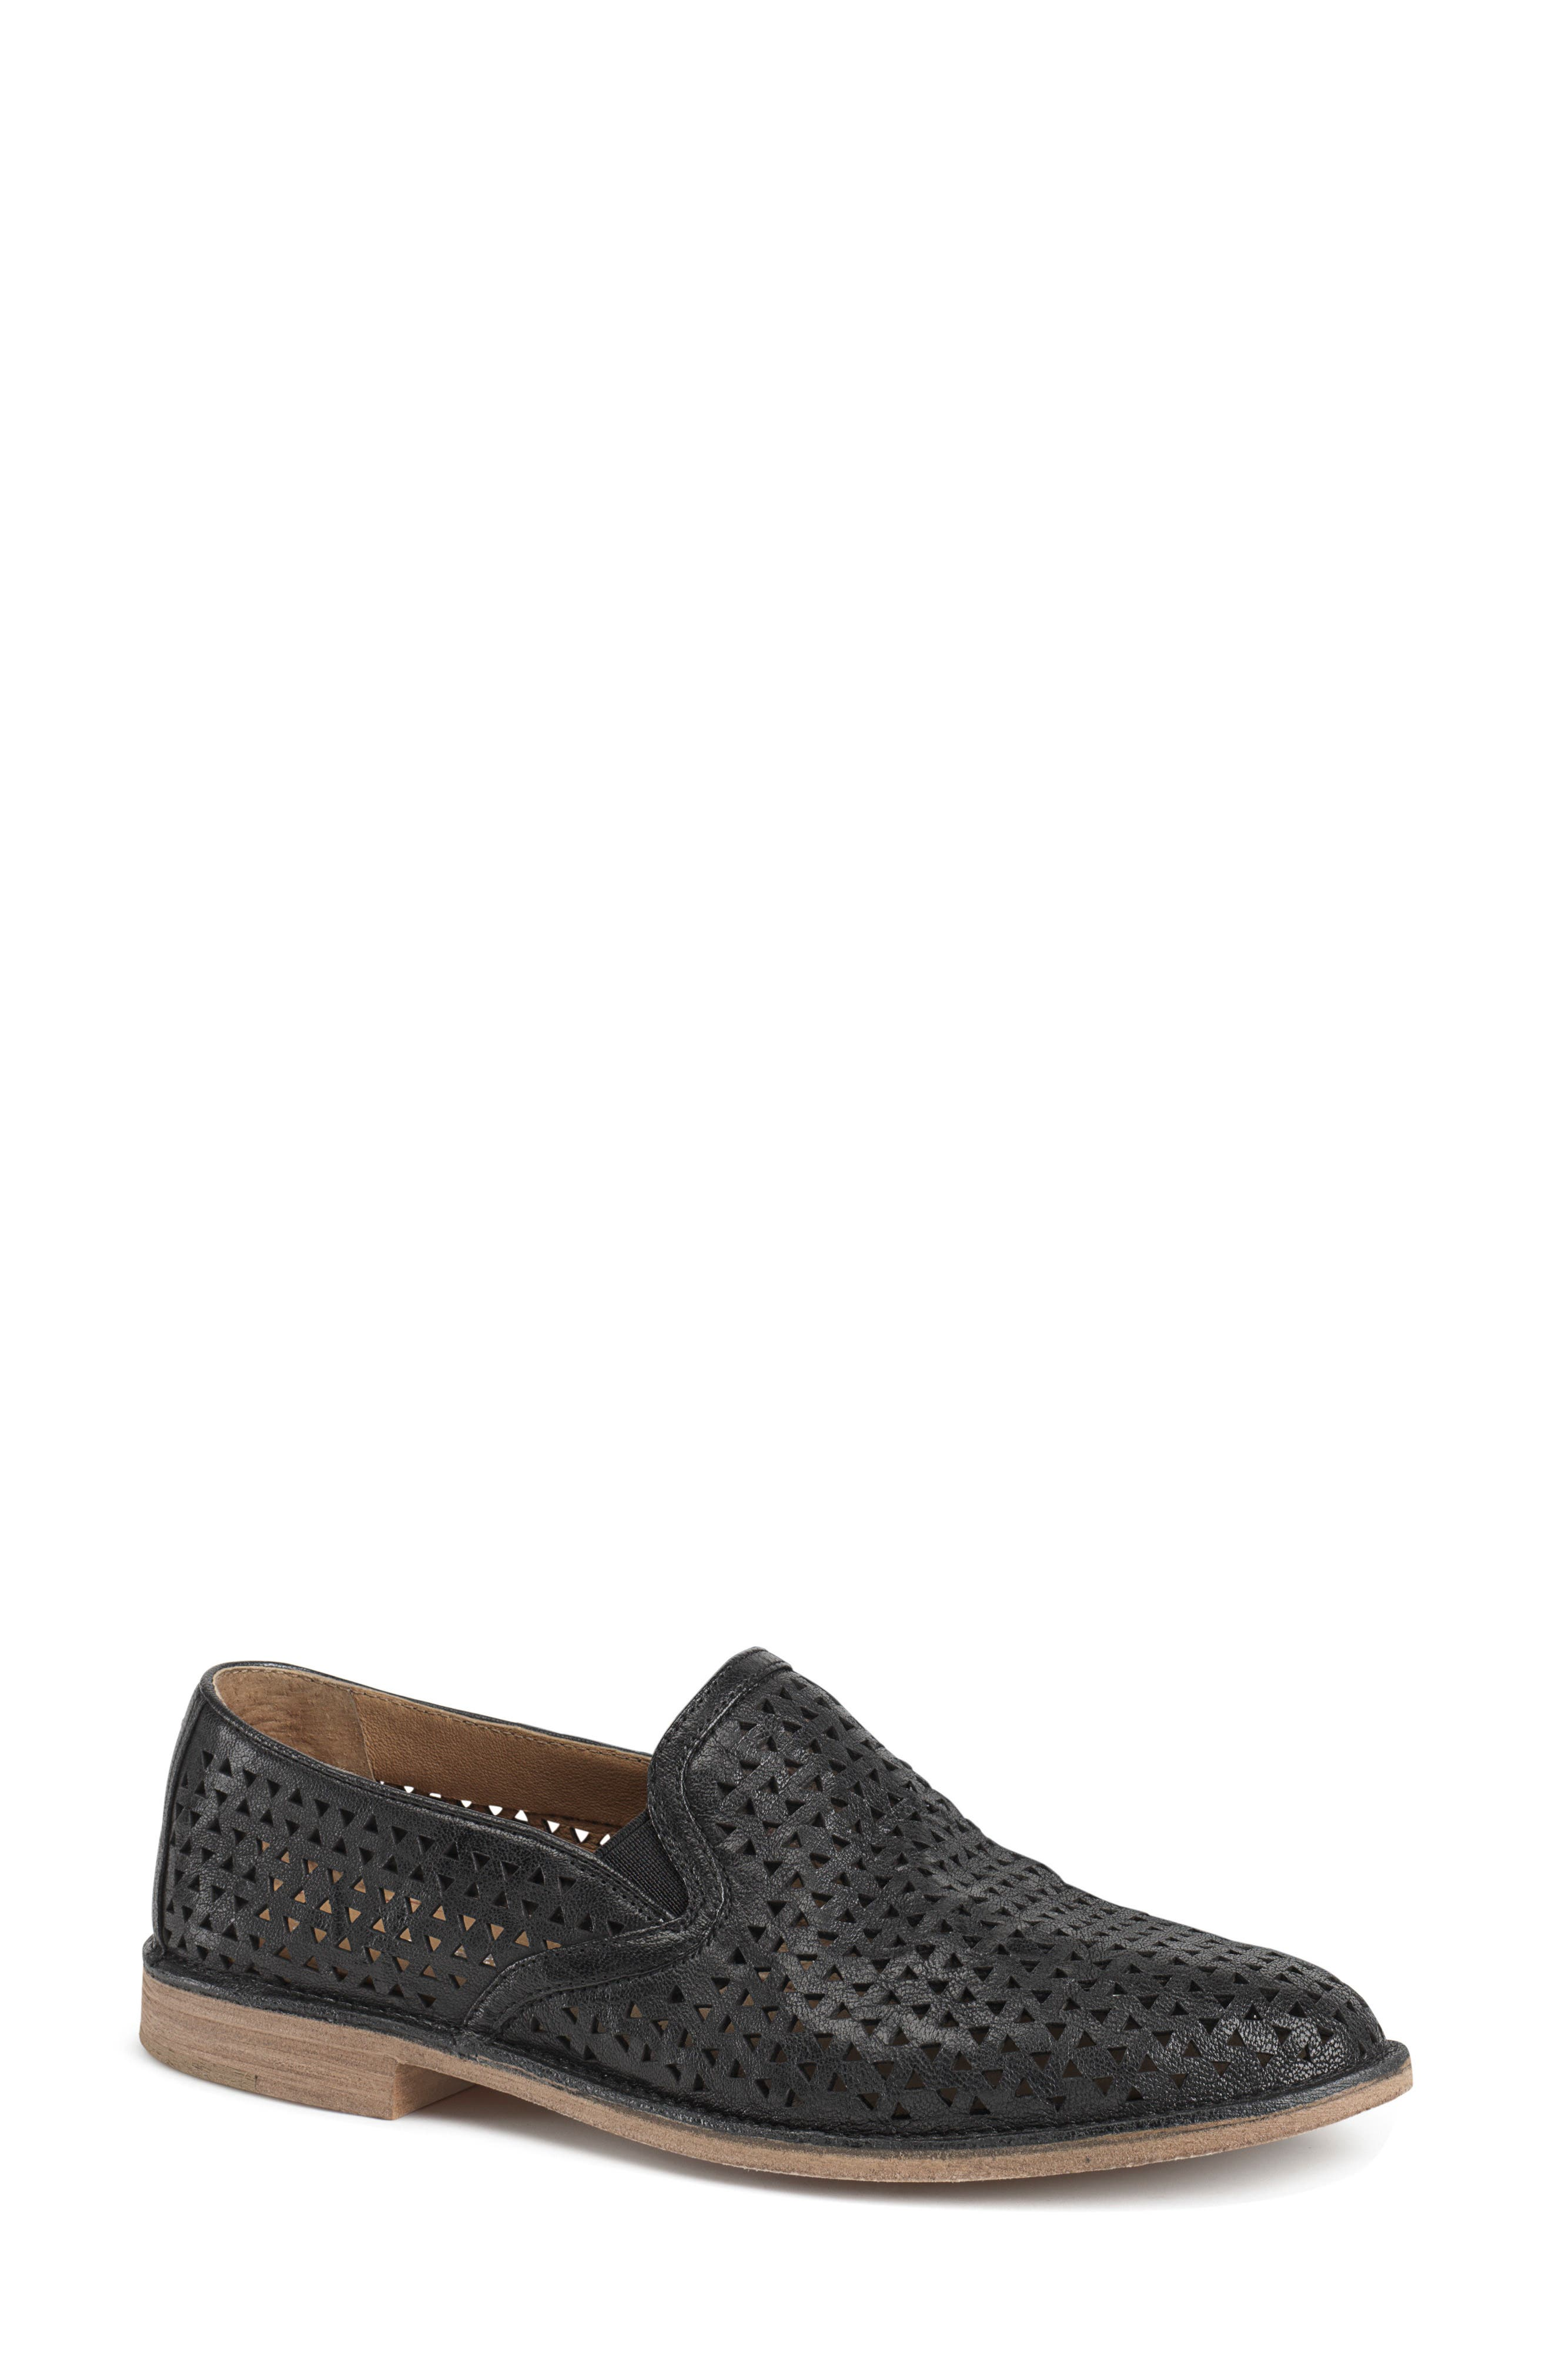 Ali Perforated Loafer,                         Main,                         color, BLACK LEATHER